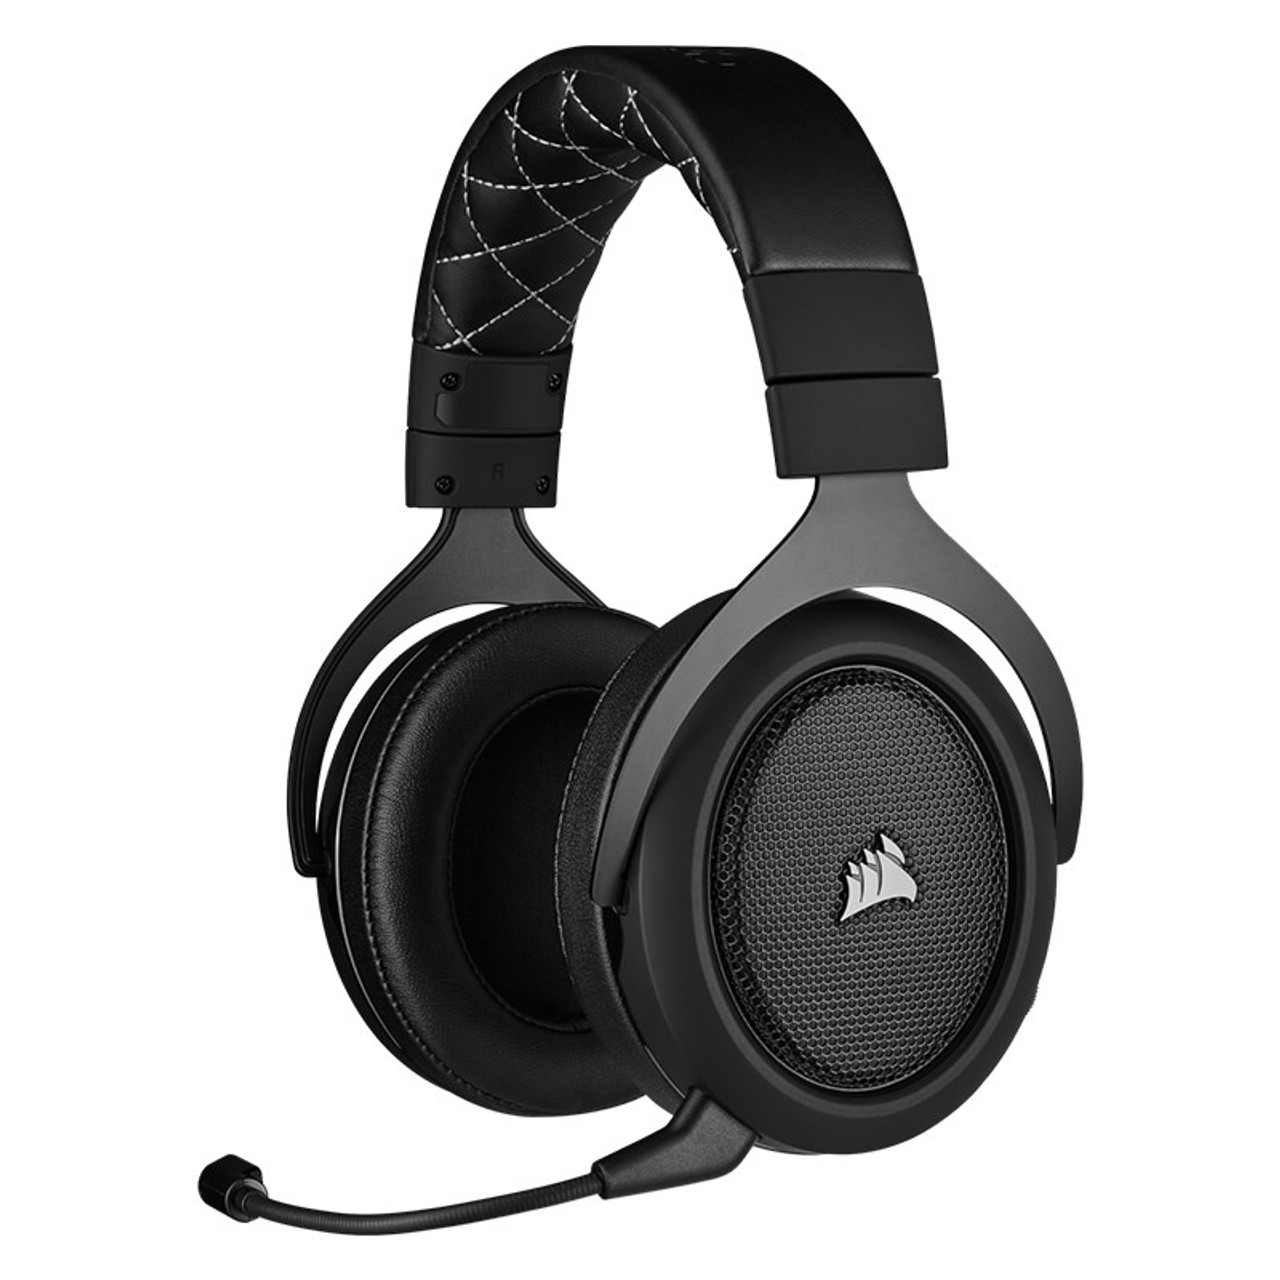 Image for Corsair HS70 PRO 7.1 Surround Wireless Gaming Headset - Carbon CX Computer Superstore